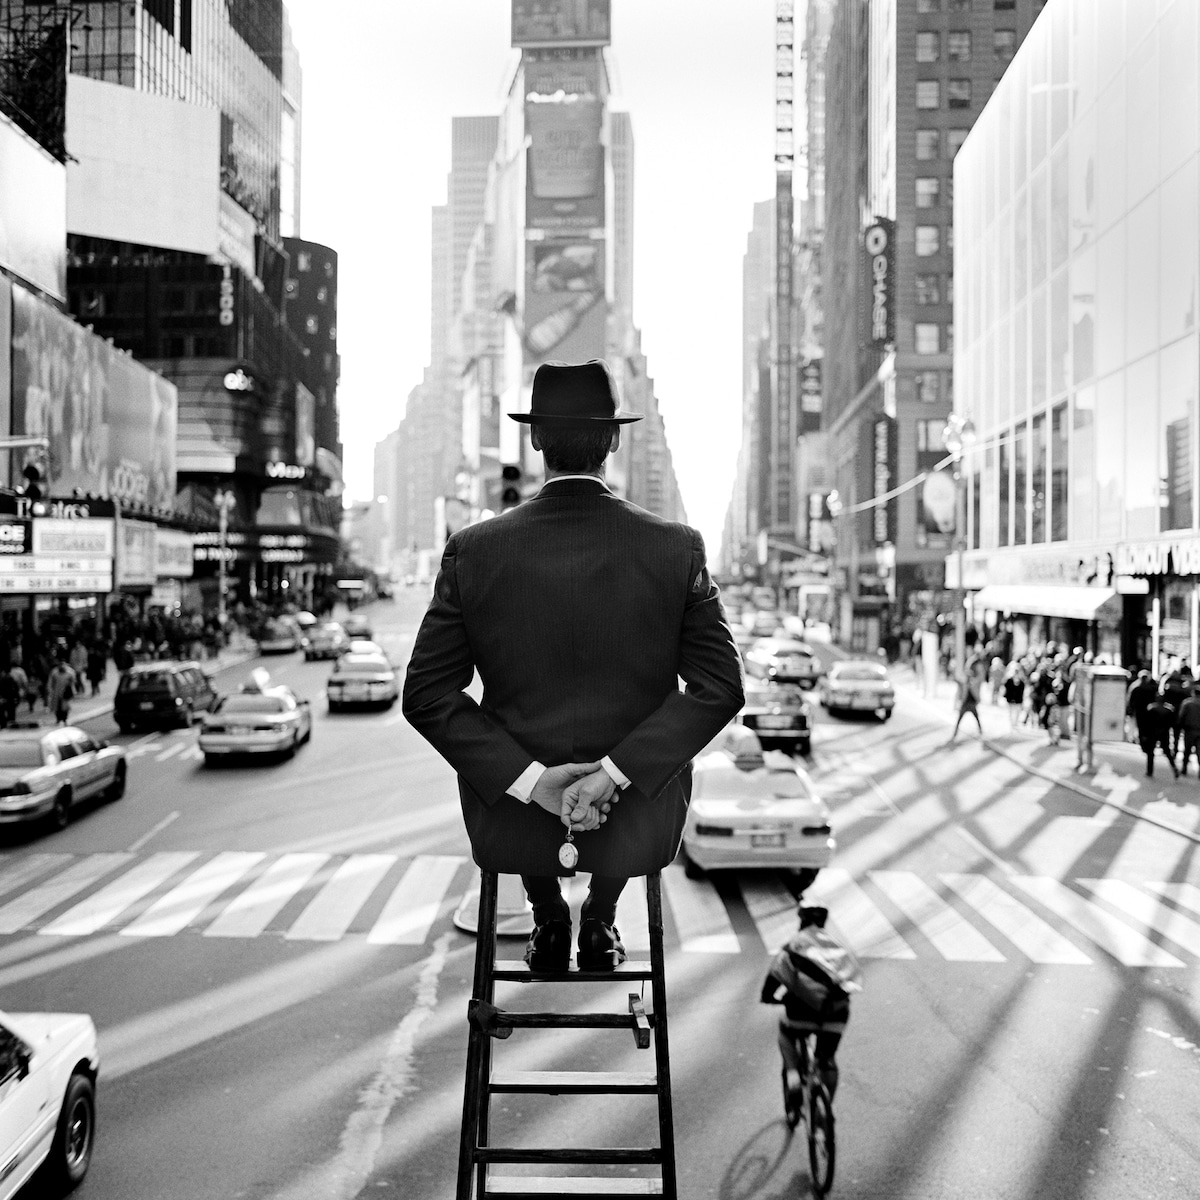 A Look at the Magical World of Iconic Photographer Rodney Smith